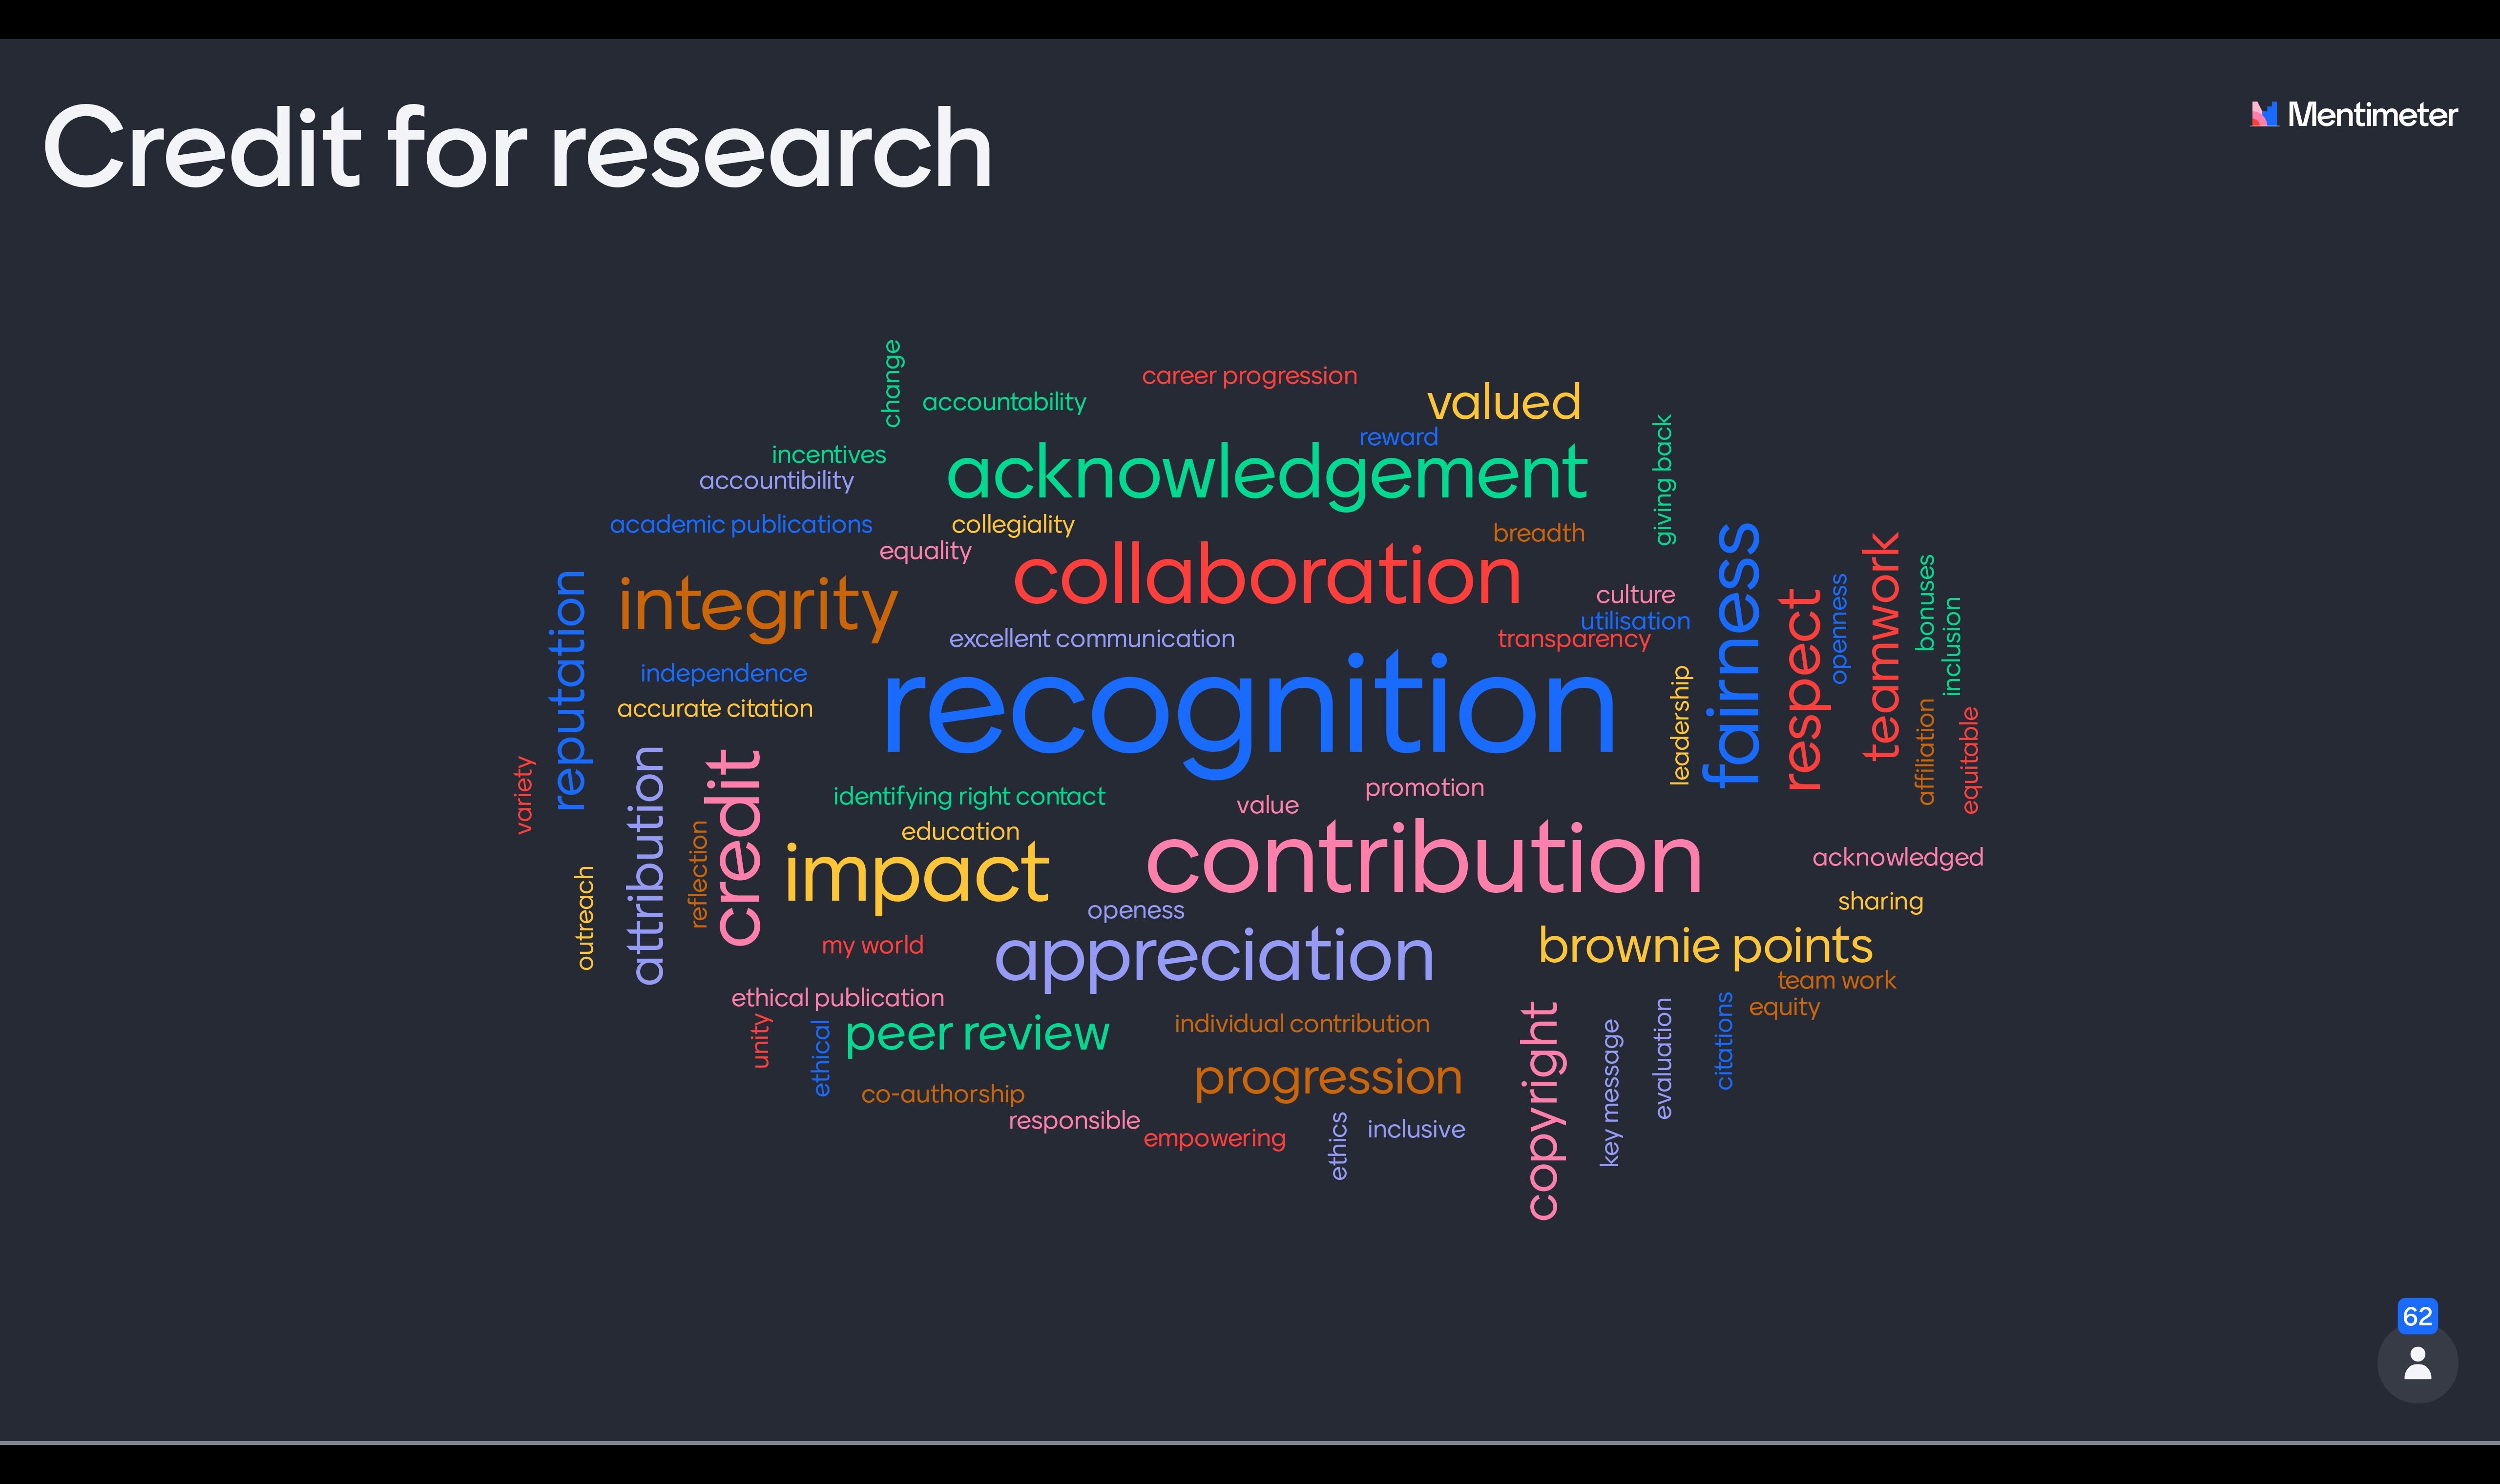 Word cloud of What Credit for Research means